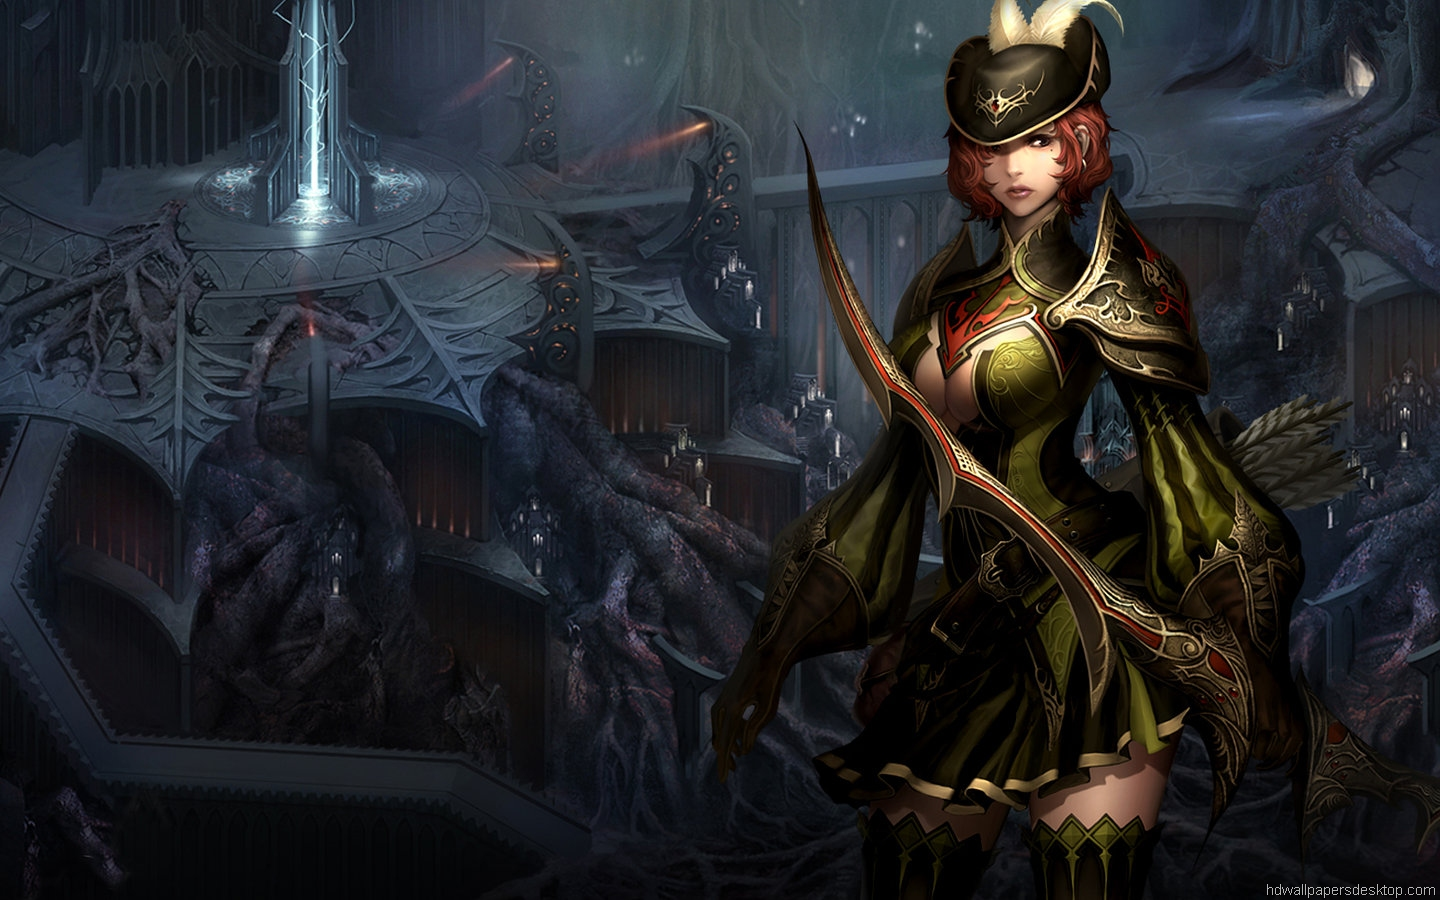 Fantasy Wallpapers Fantasy Art Wallpapers HD Widescreen 1440x900